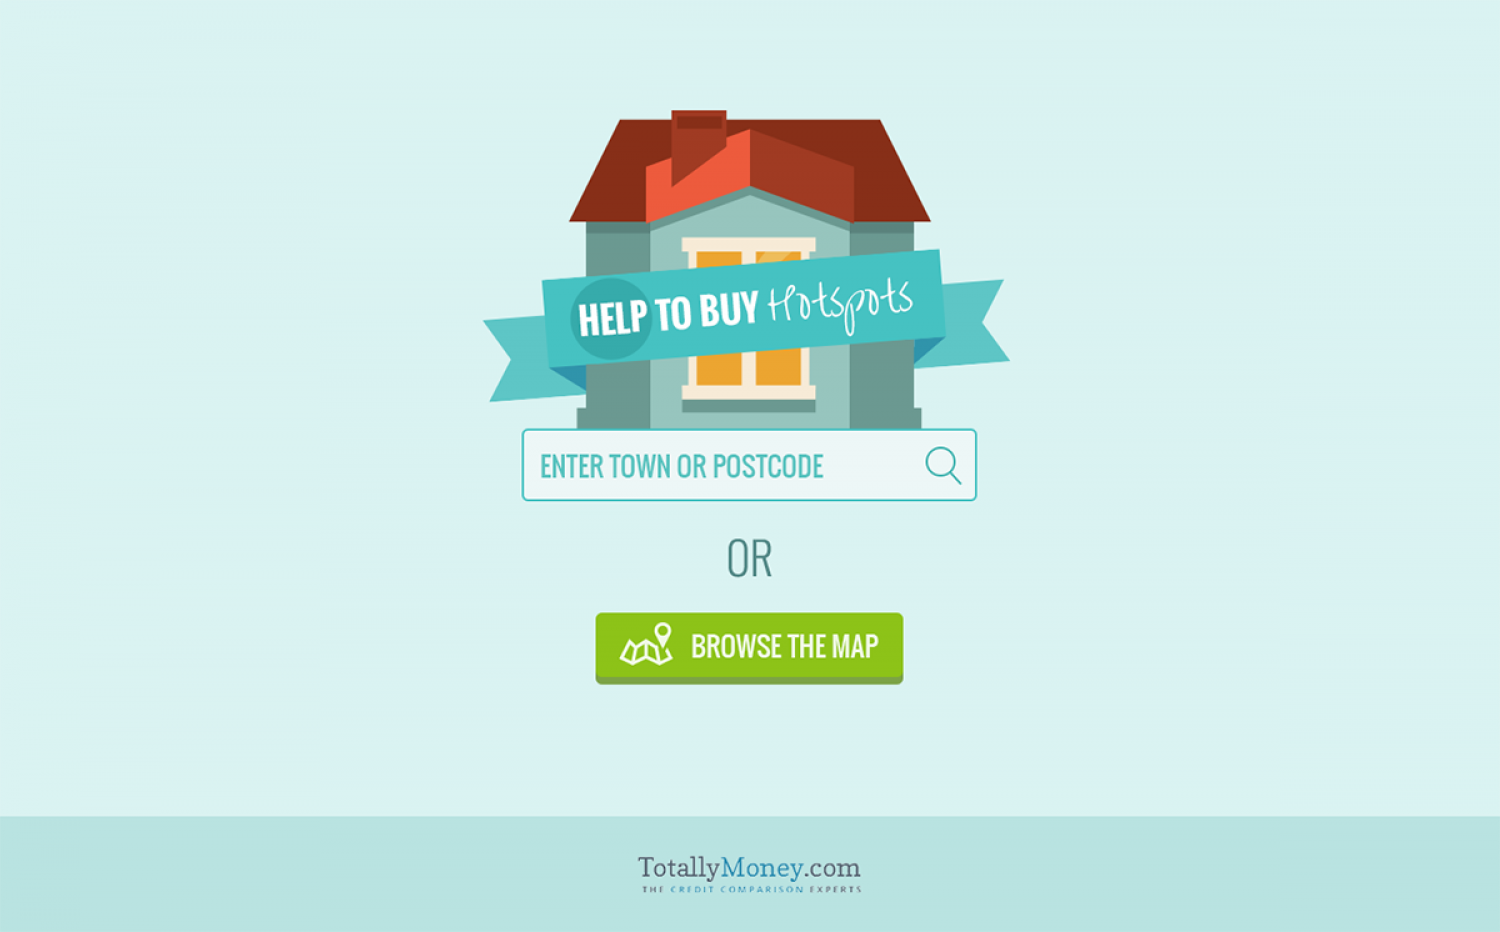 Help to Buy Hotspots in the UK Infographic